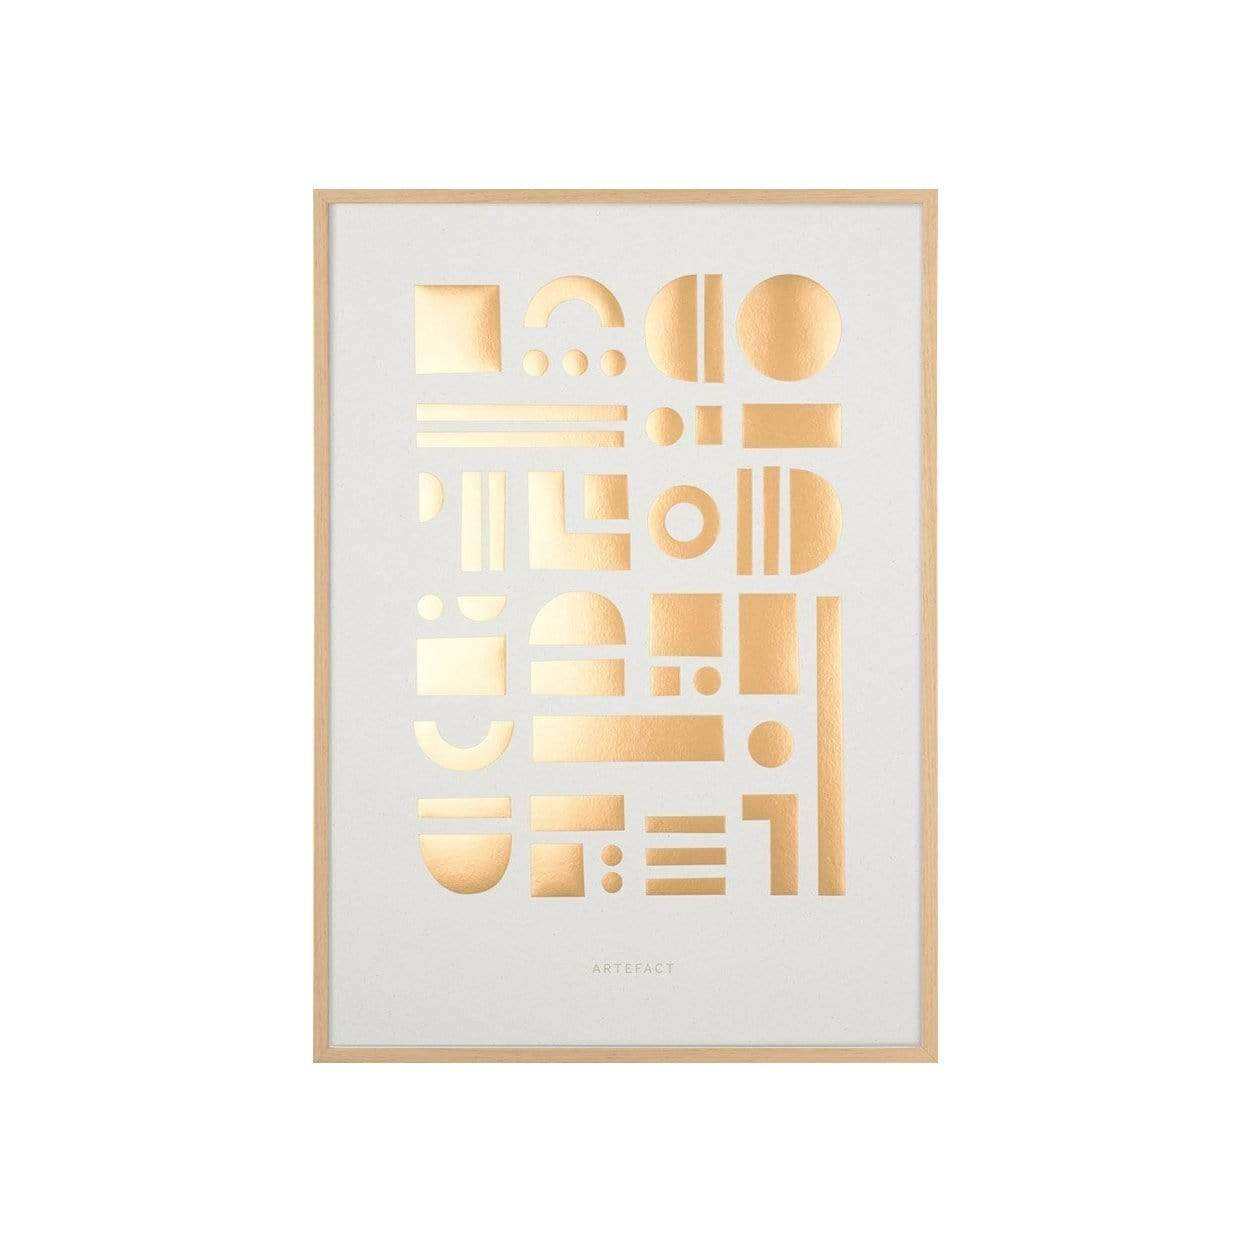 Tom Pigeon Photography + Prints Artefact Copper Art Print